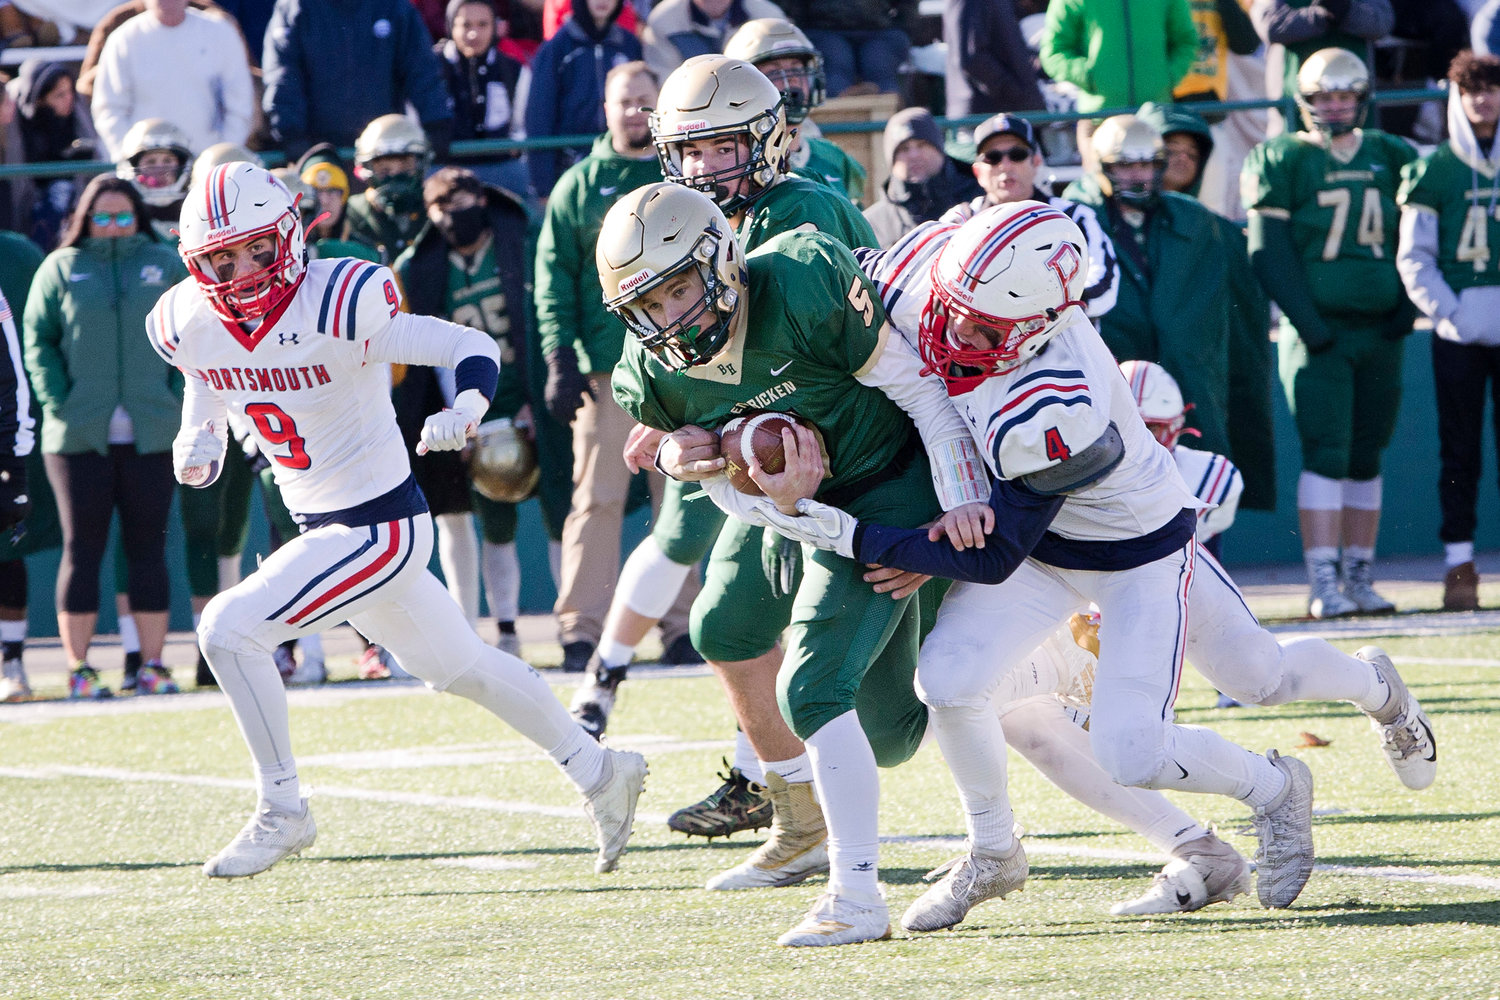 Portsmouth High's Jake Letourneau stops a Hendricken ball-carrier as Christopher Bulk runs around front for support during the Division I Super Bowl game held Saturday in Cranston.